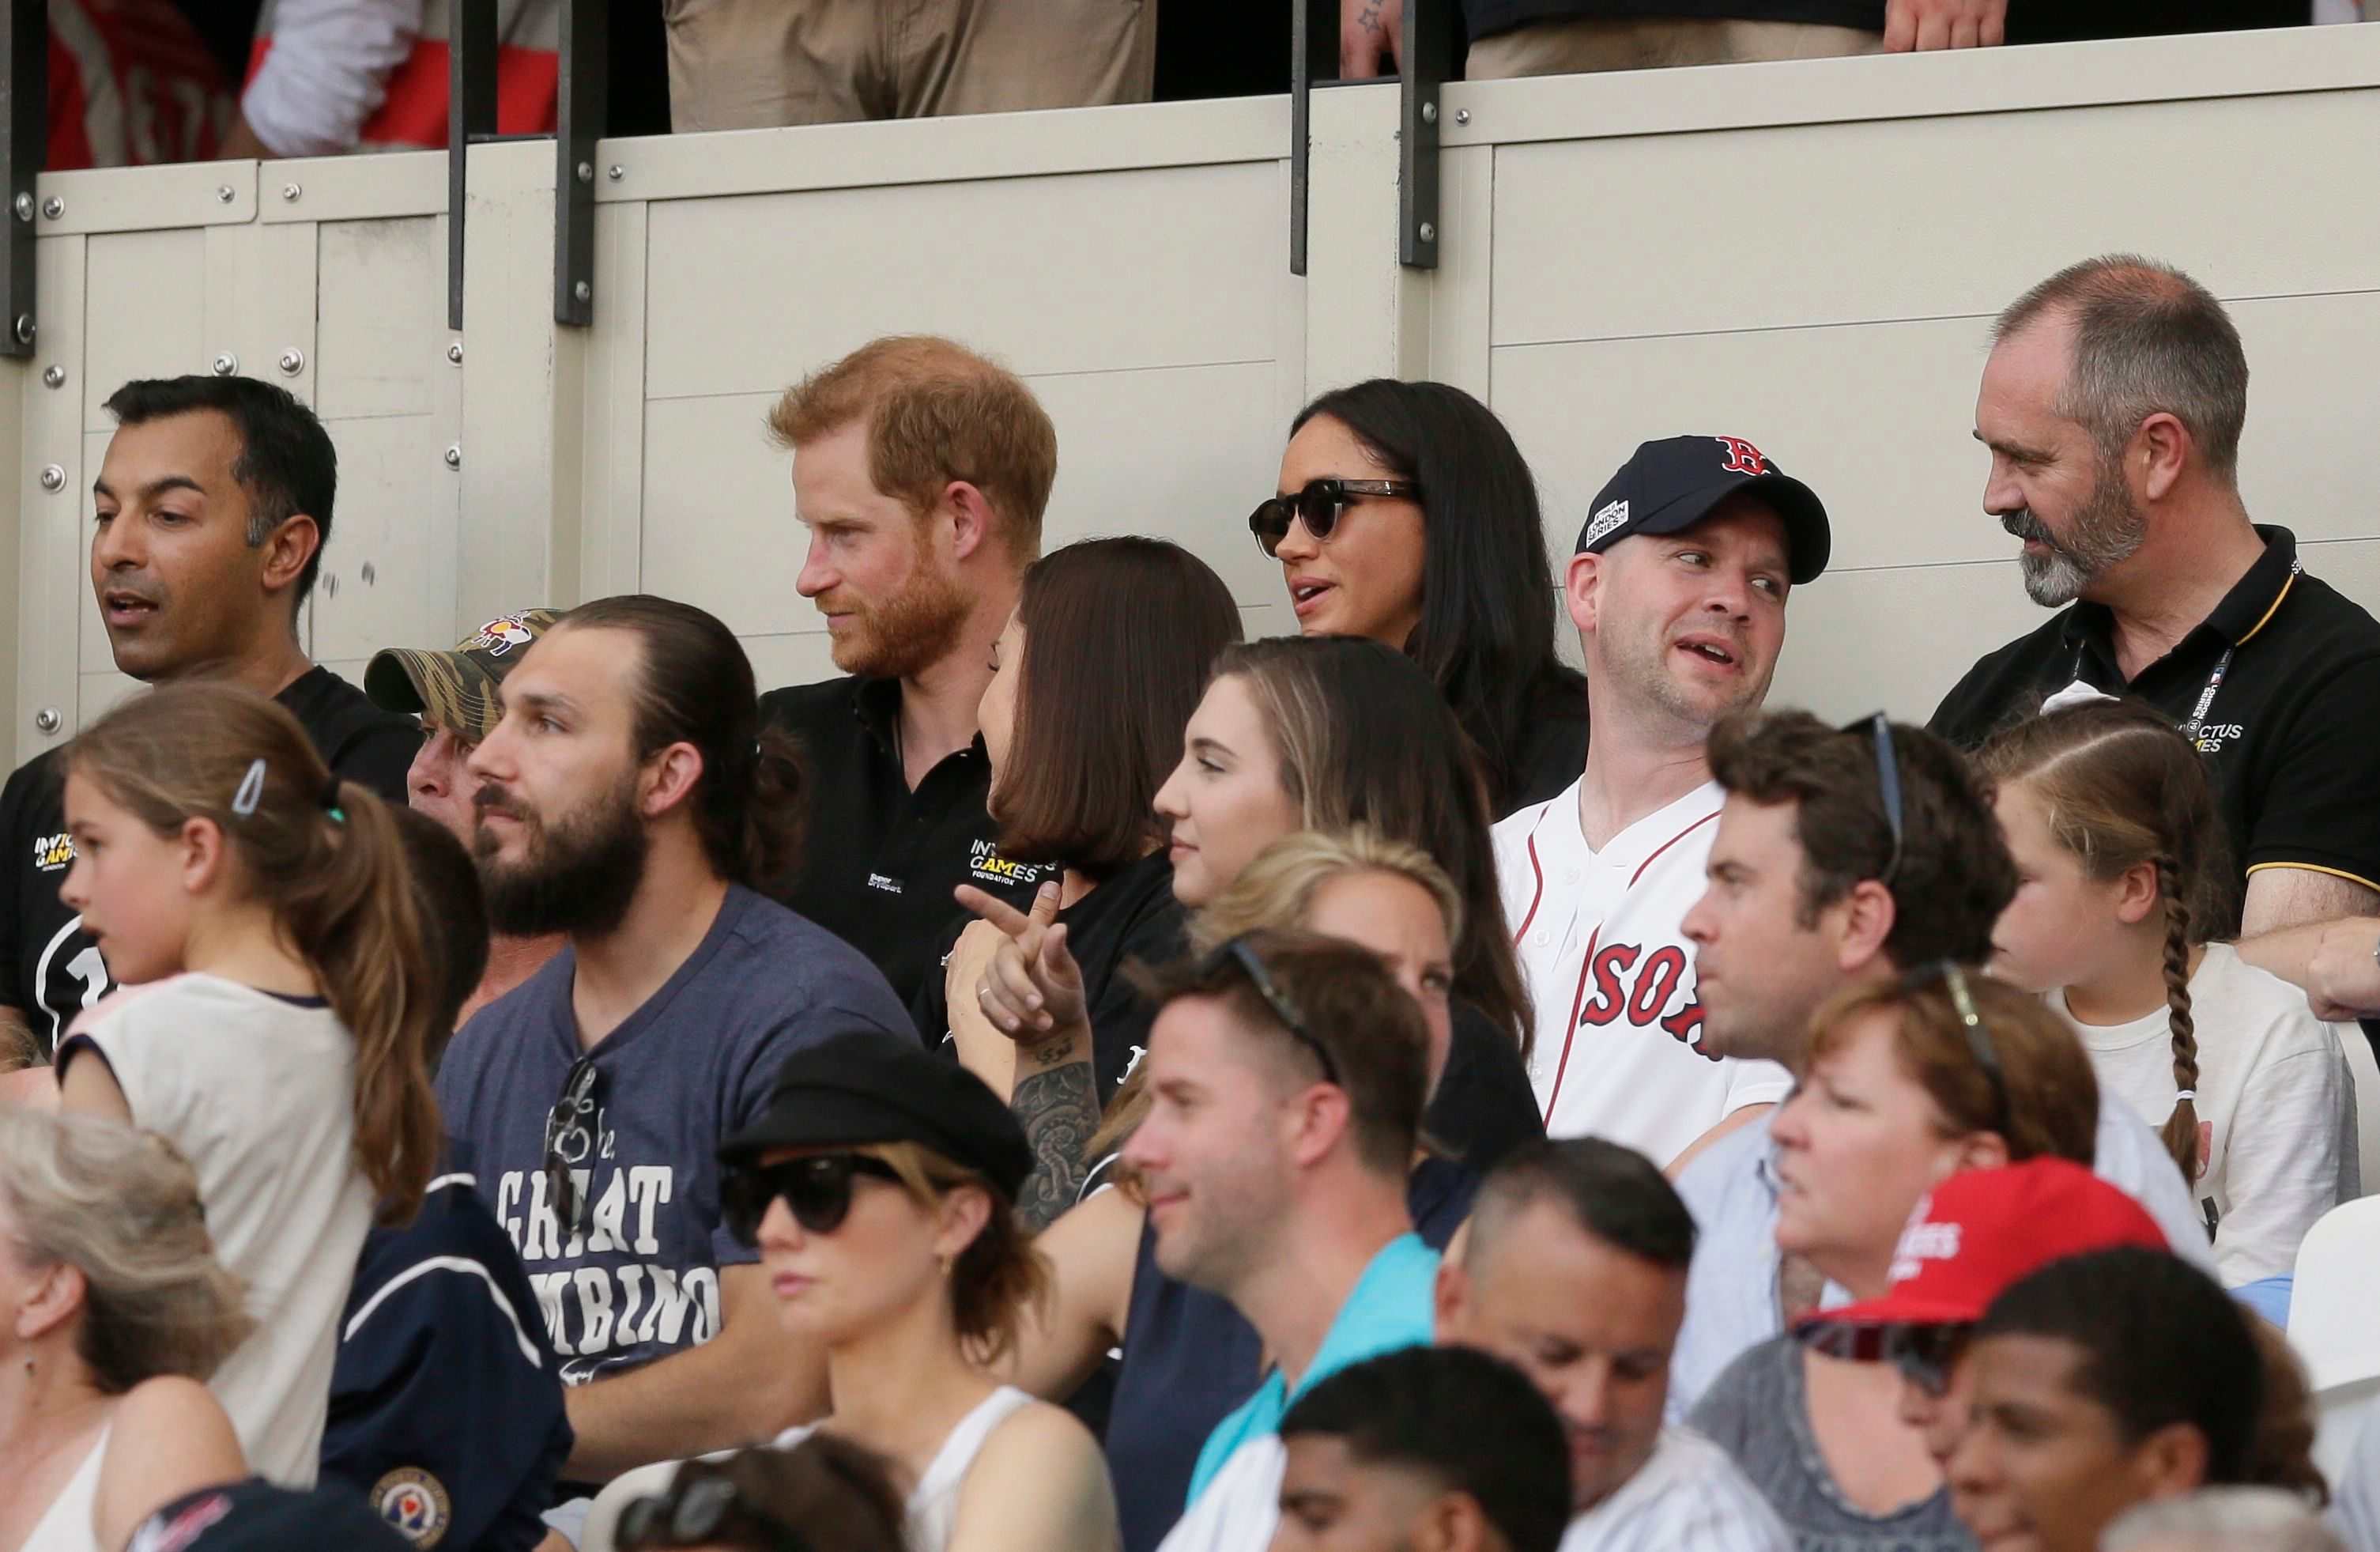 Harry 'ignores' wife Meghan during baseball game in awkward moment